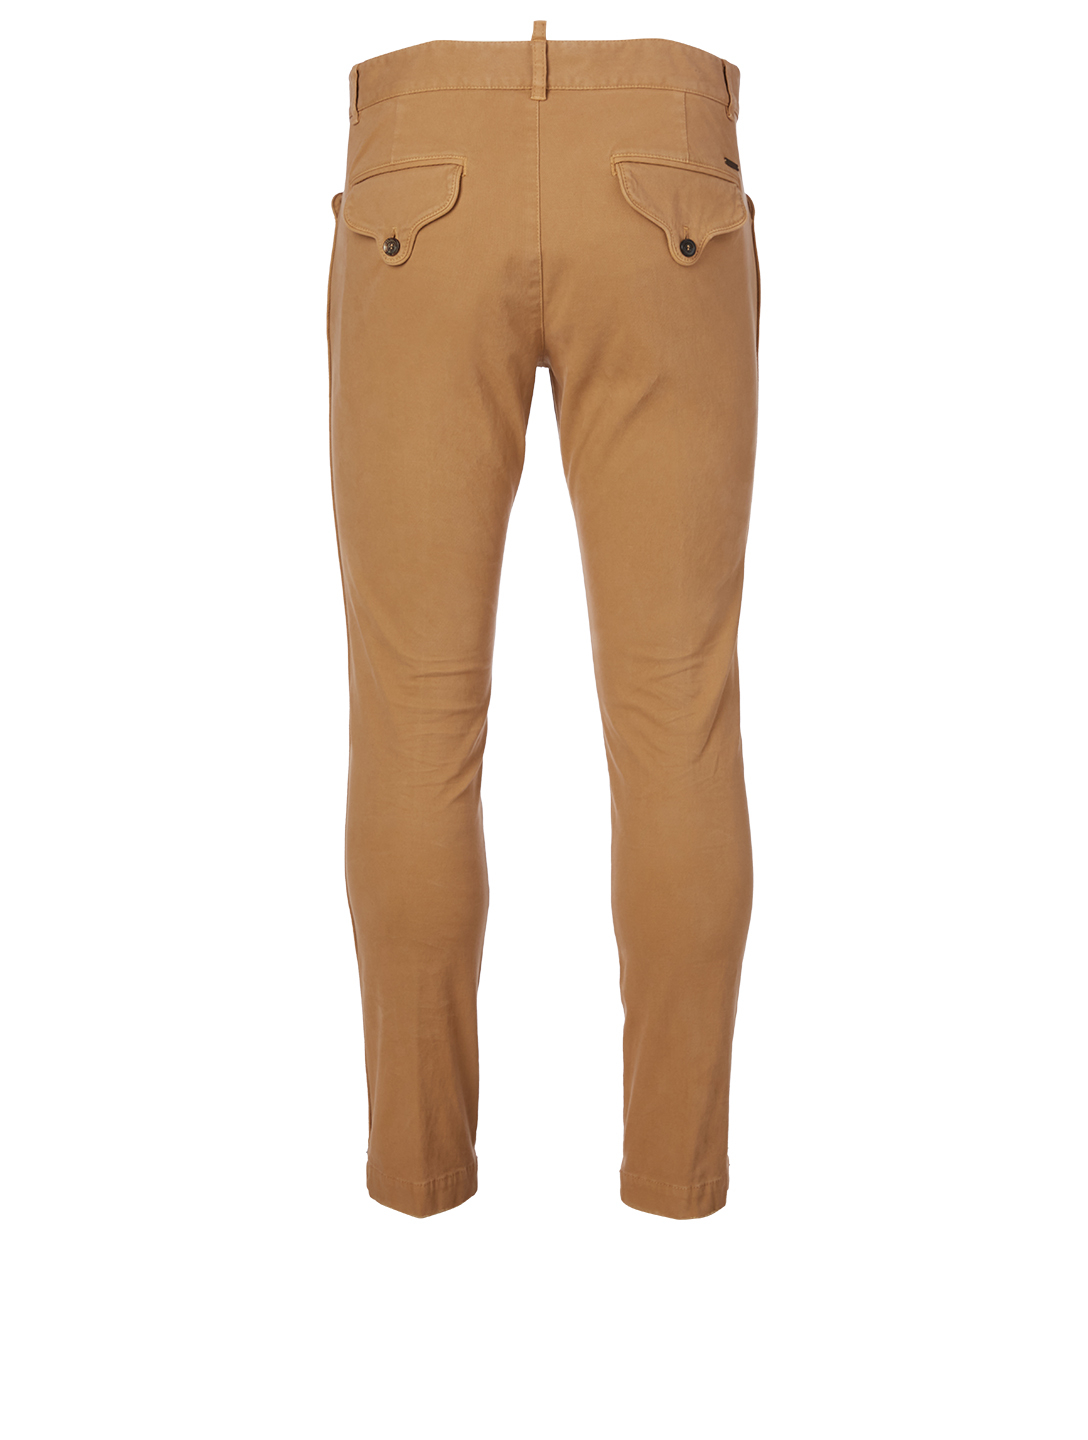 DSQUARED2 Pantalon Cool Guy en coton stretch Hommes Beige